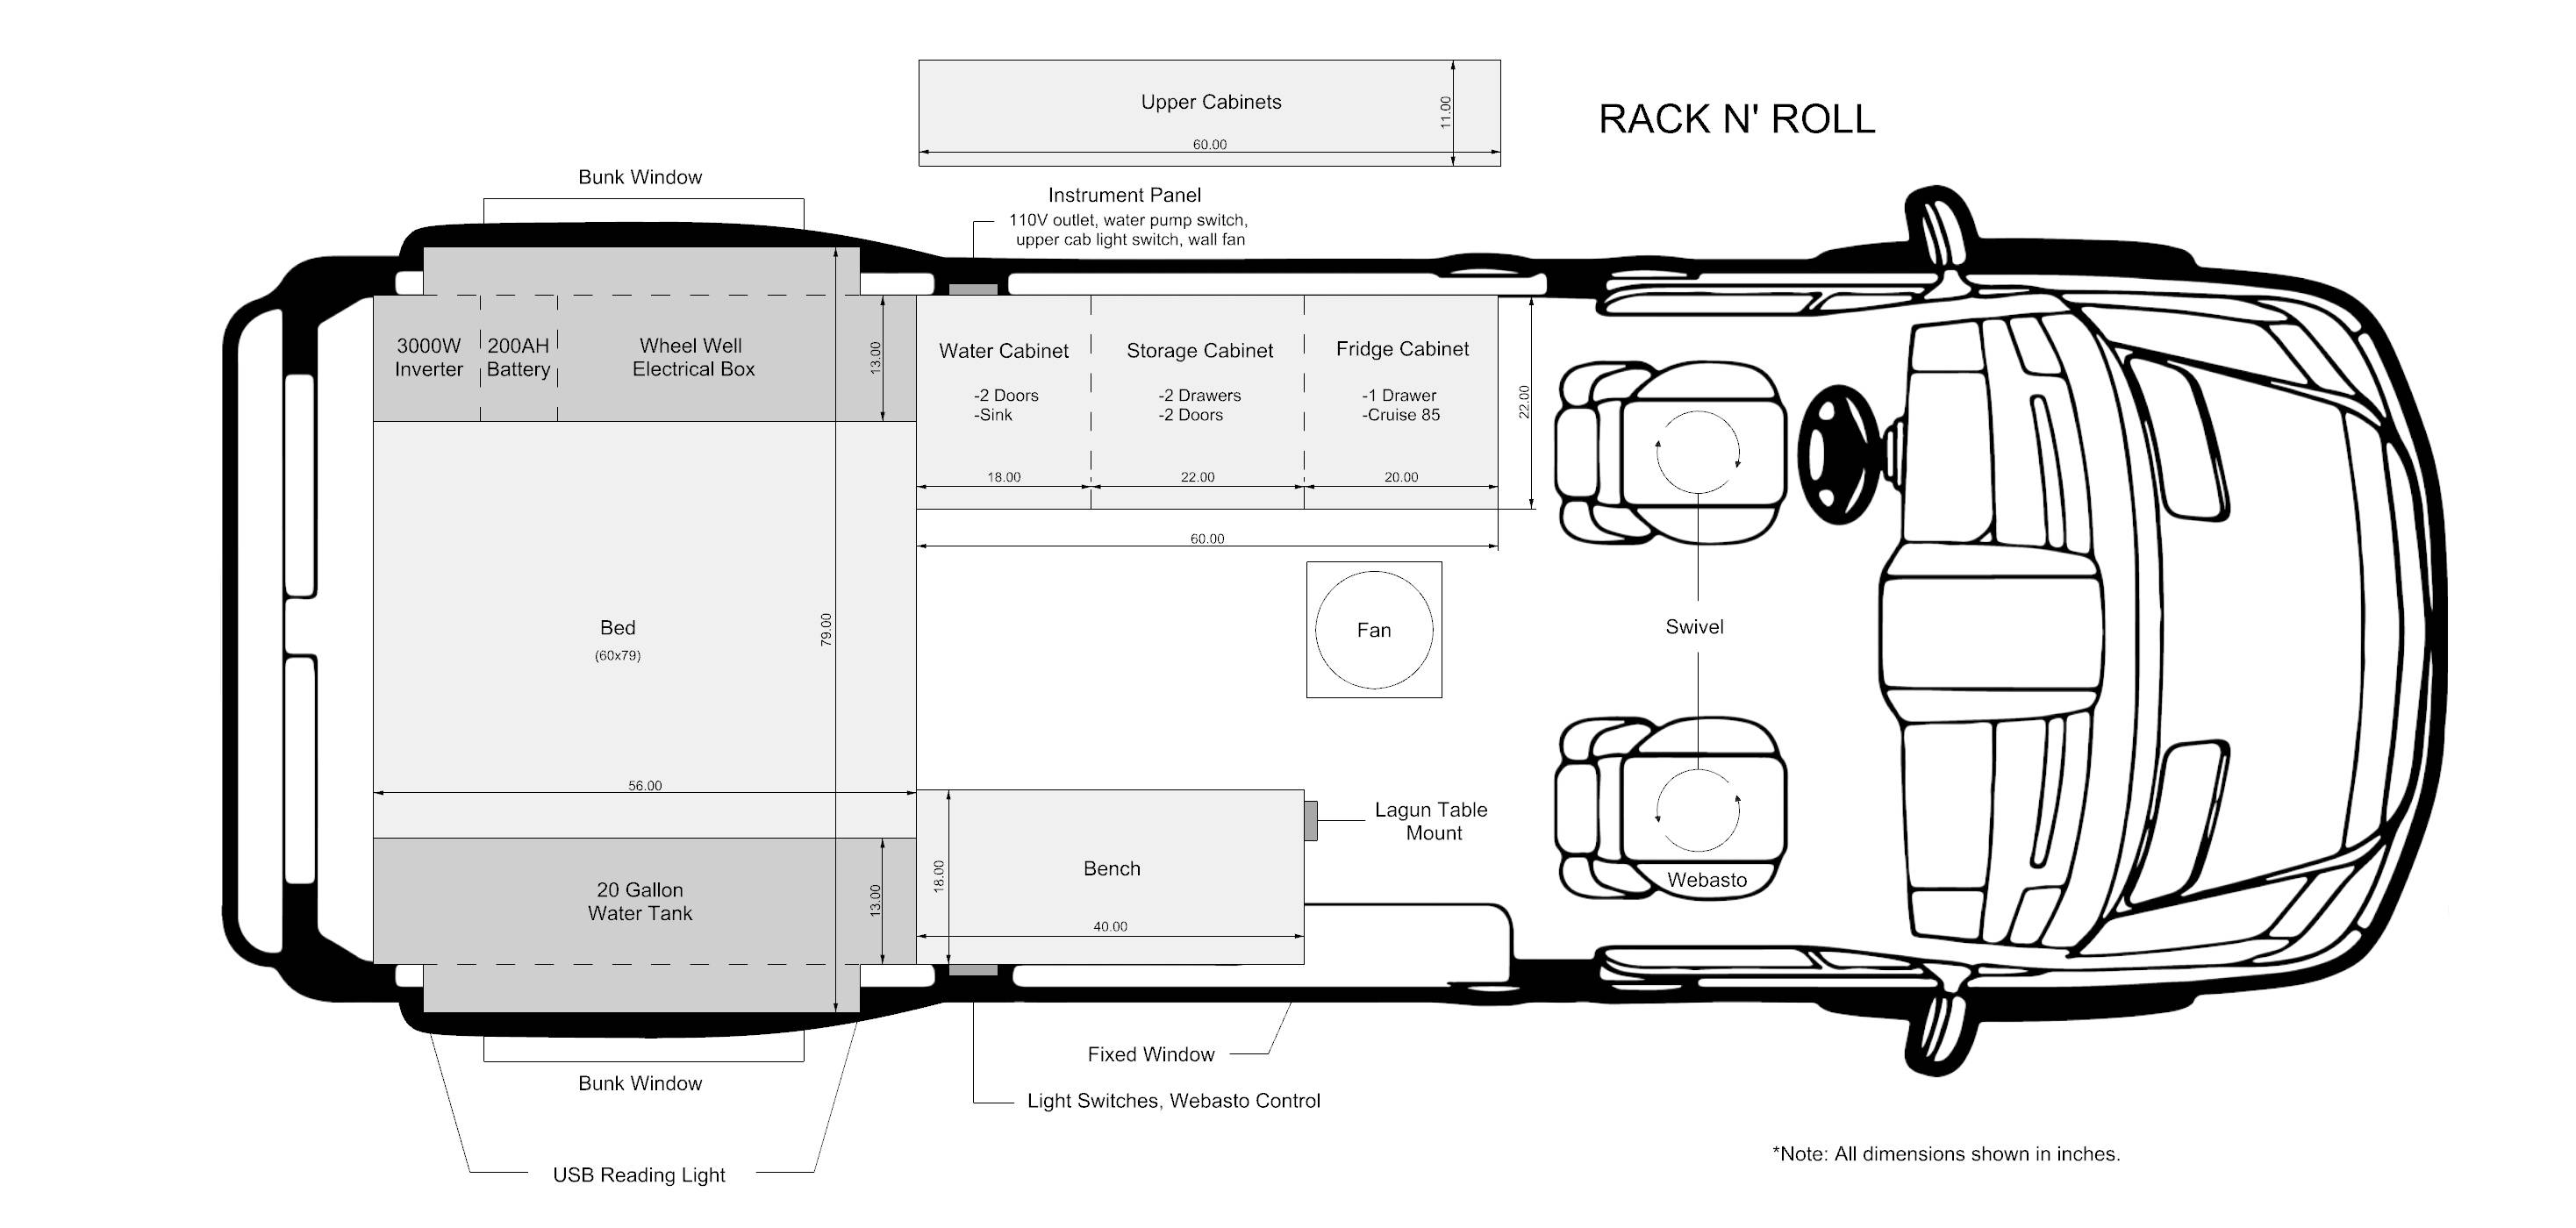 Rack & Roll - Sprinter 144 Conversion Layout and Floor Plan - The Vansmith